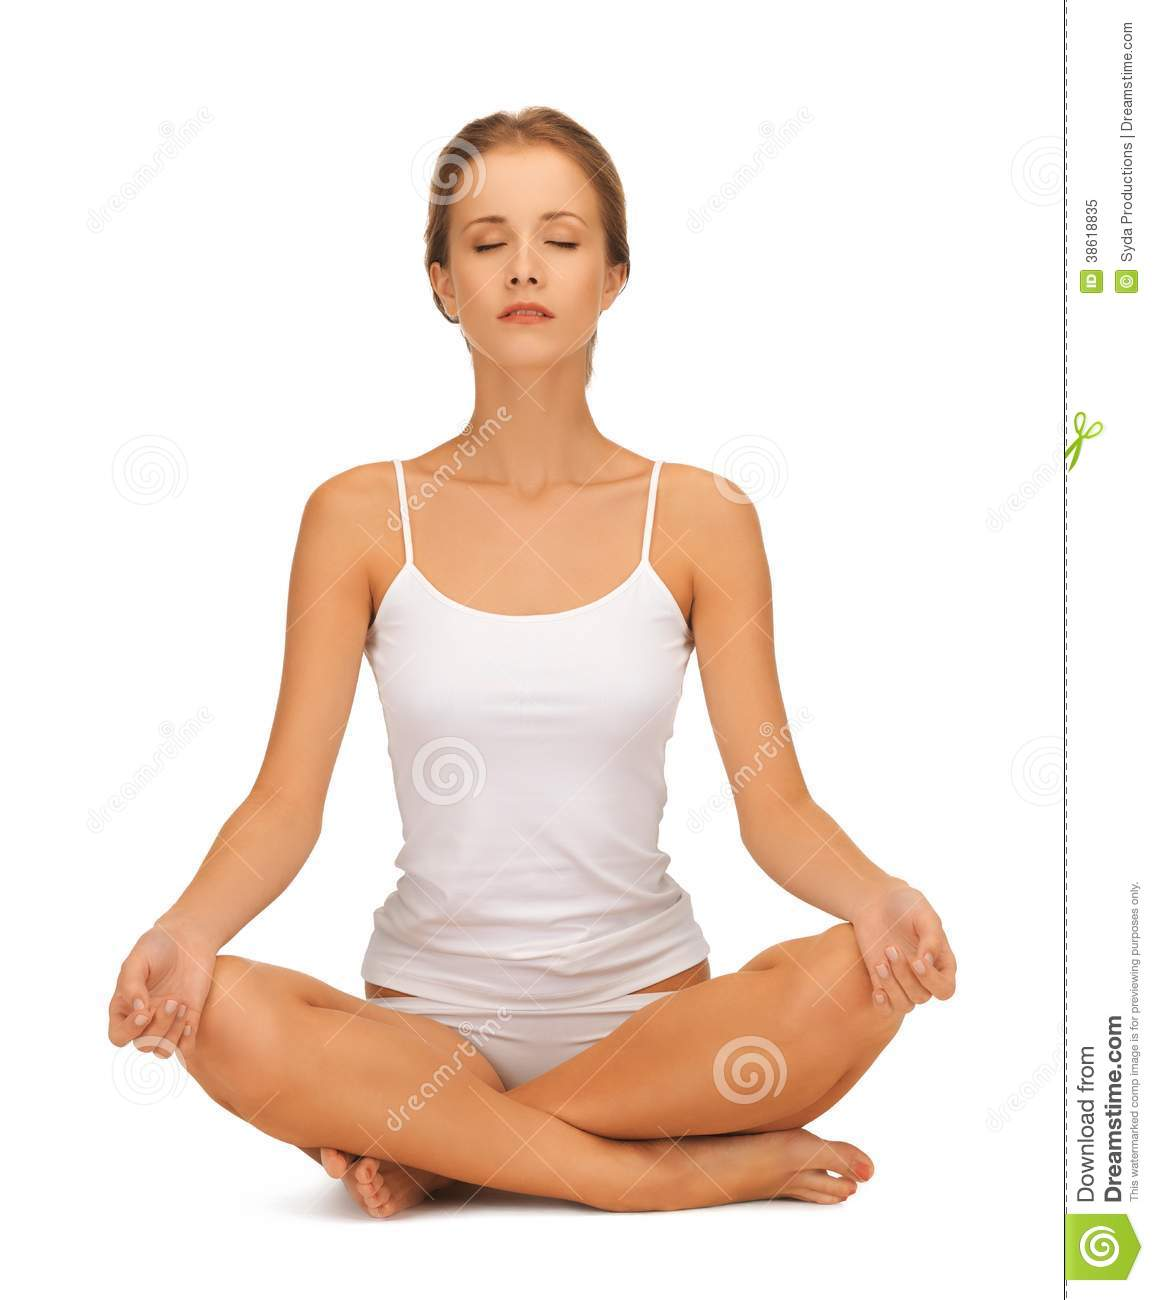 Woman In Undrewear Practicing Yoga Lotus Pose Stock Image ...